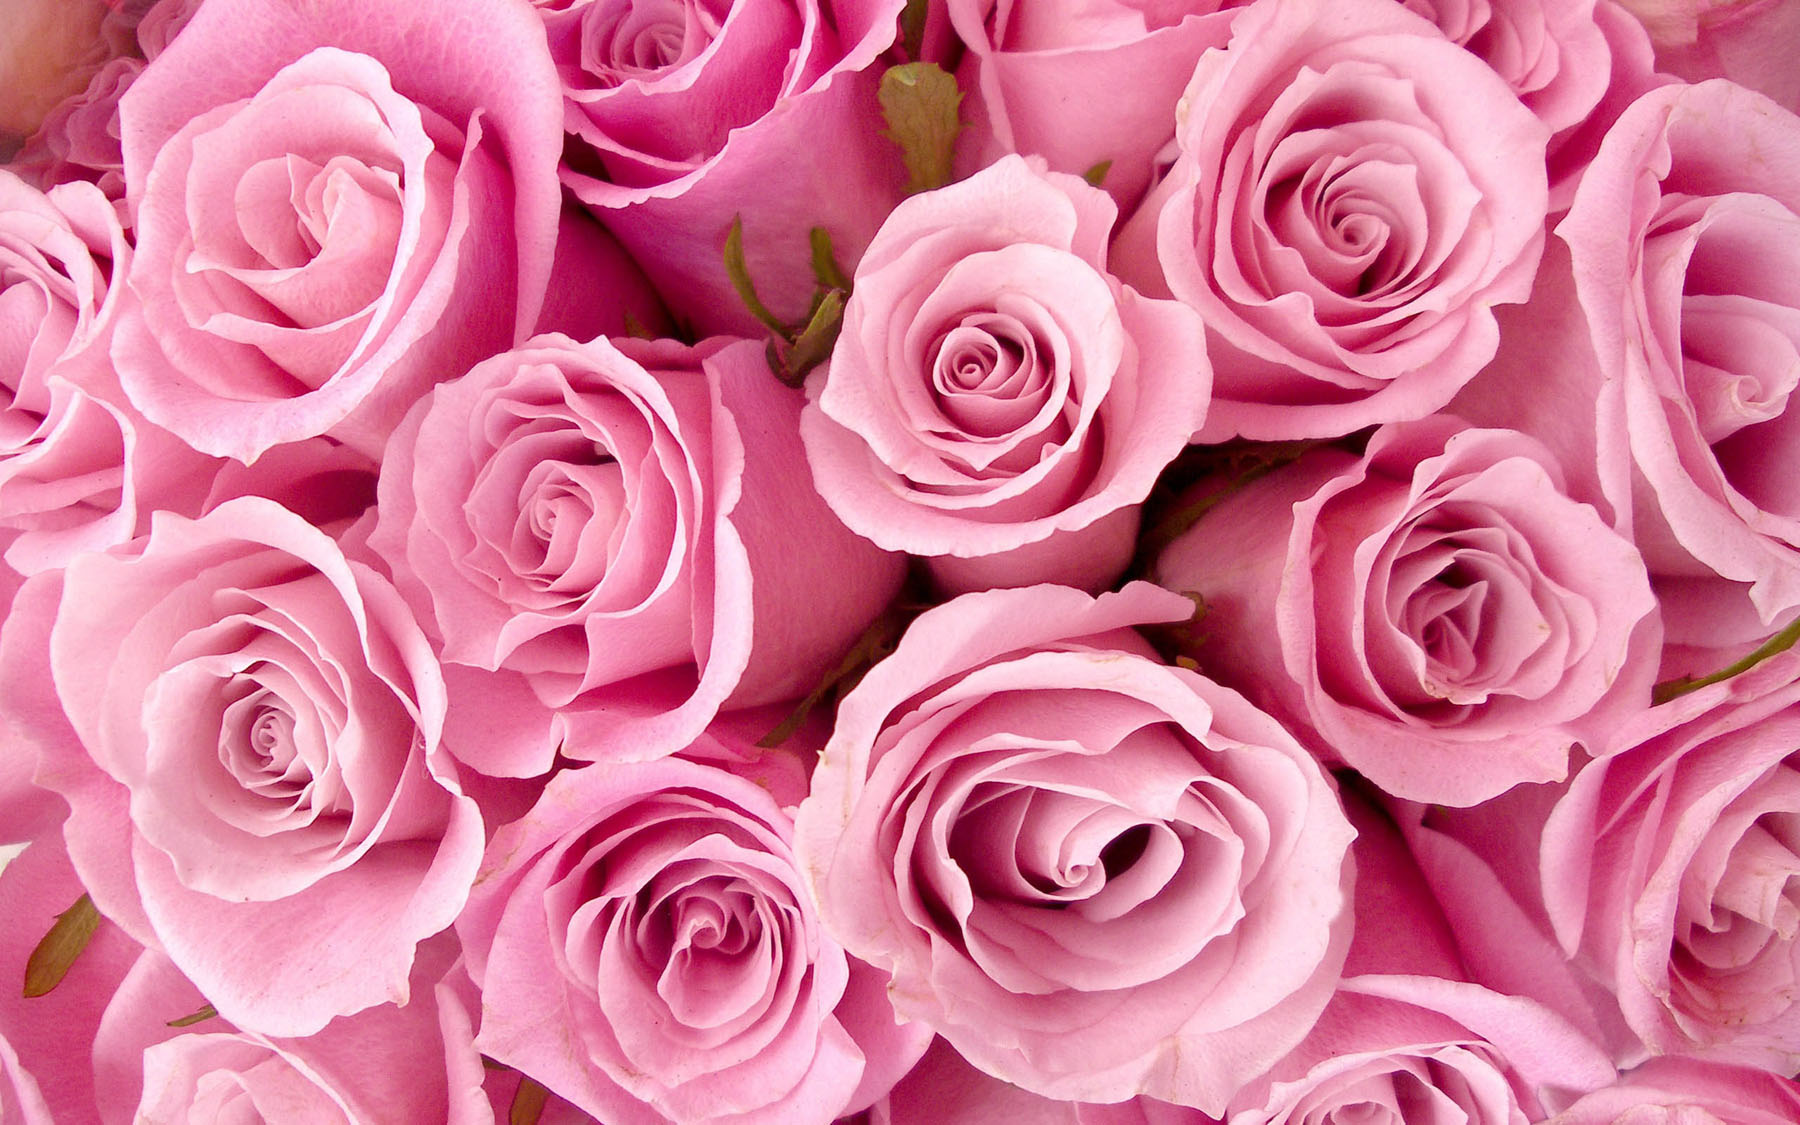 High-resolution photo roses 24965